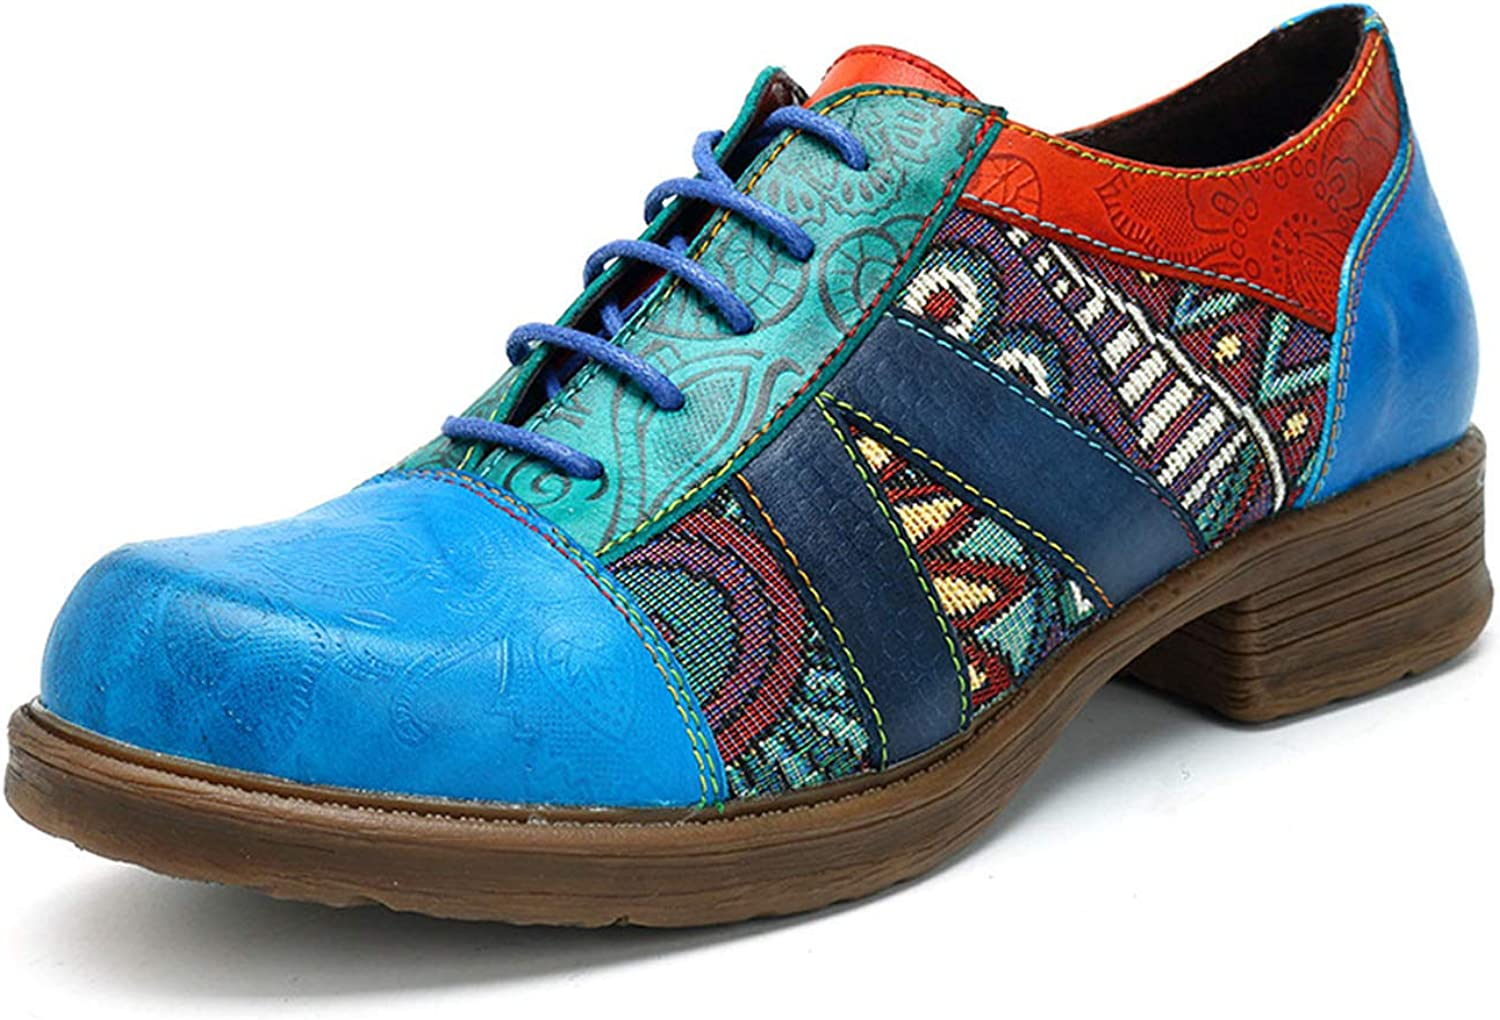 Honeystore Women's shoes Round Toe Retro Carving Print Leather Lace-up Oxford Flats